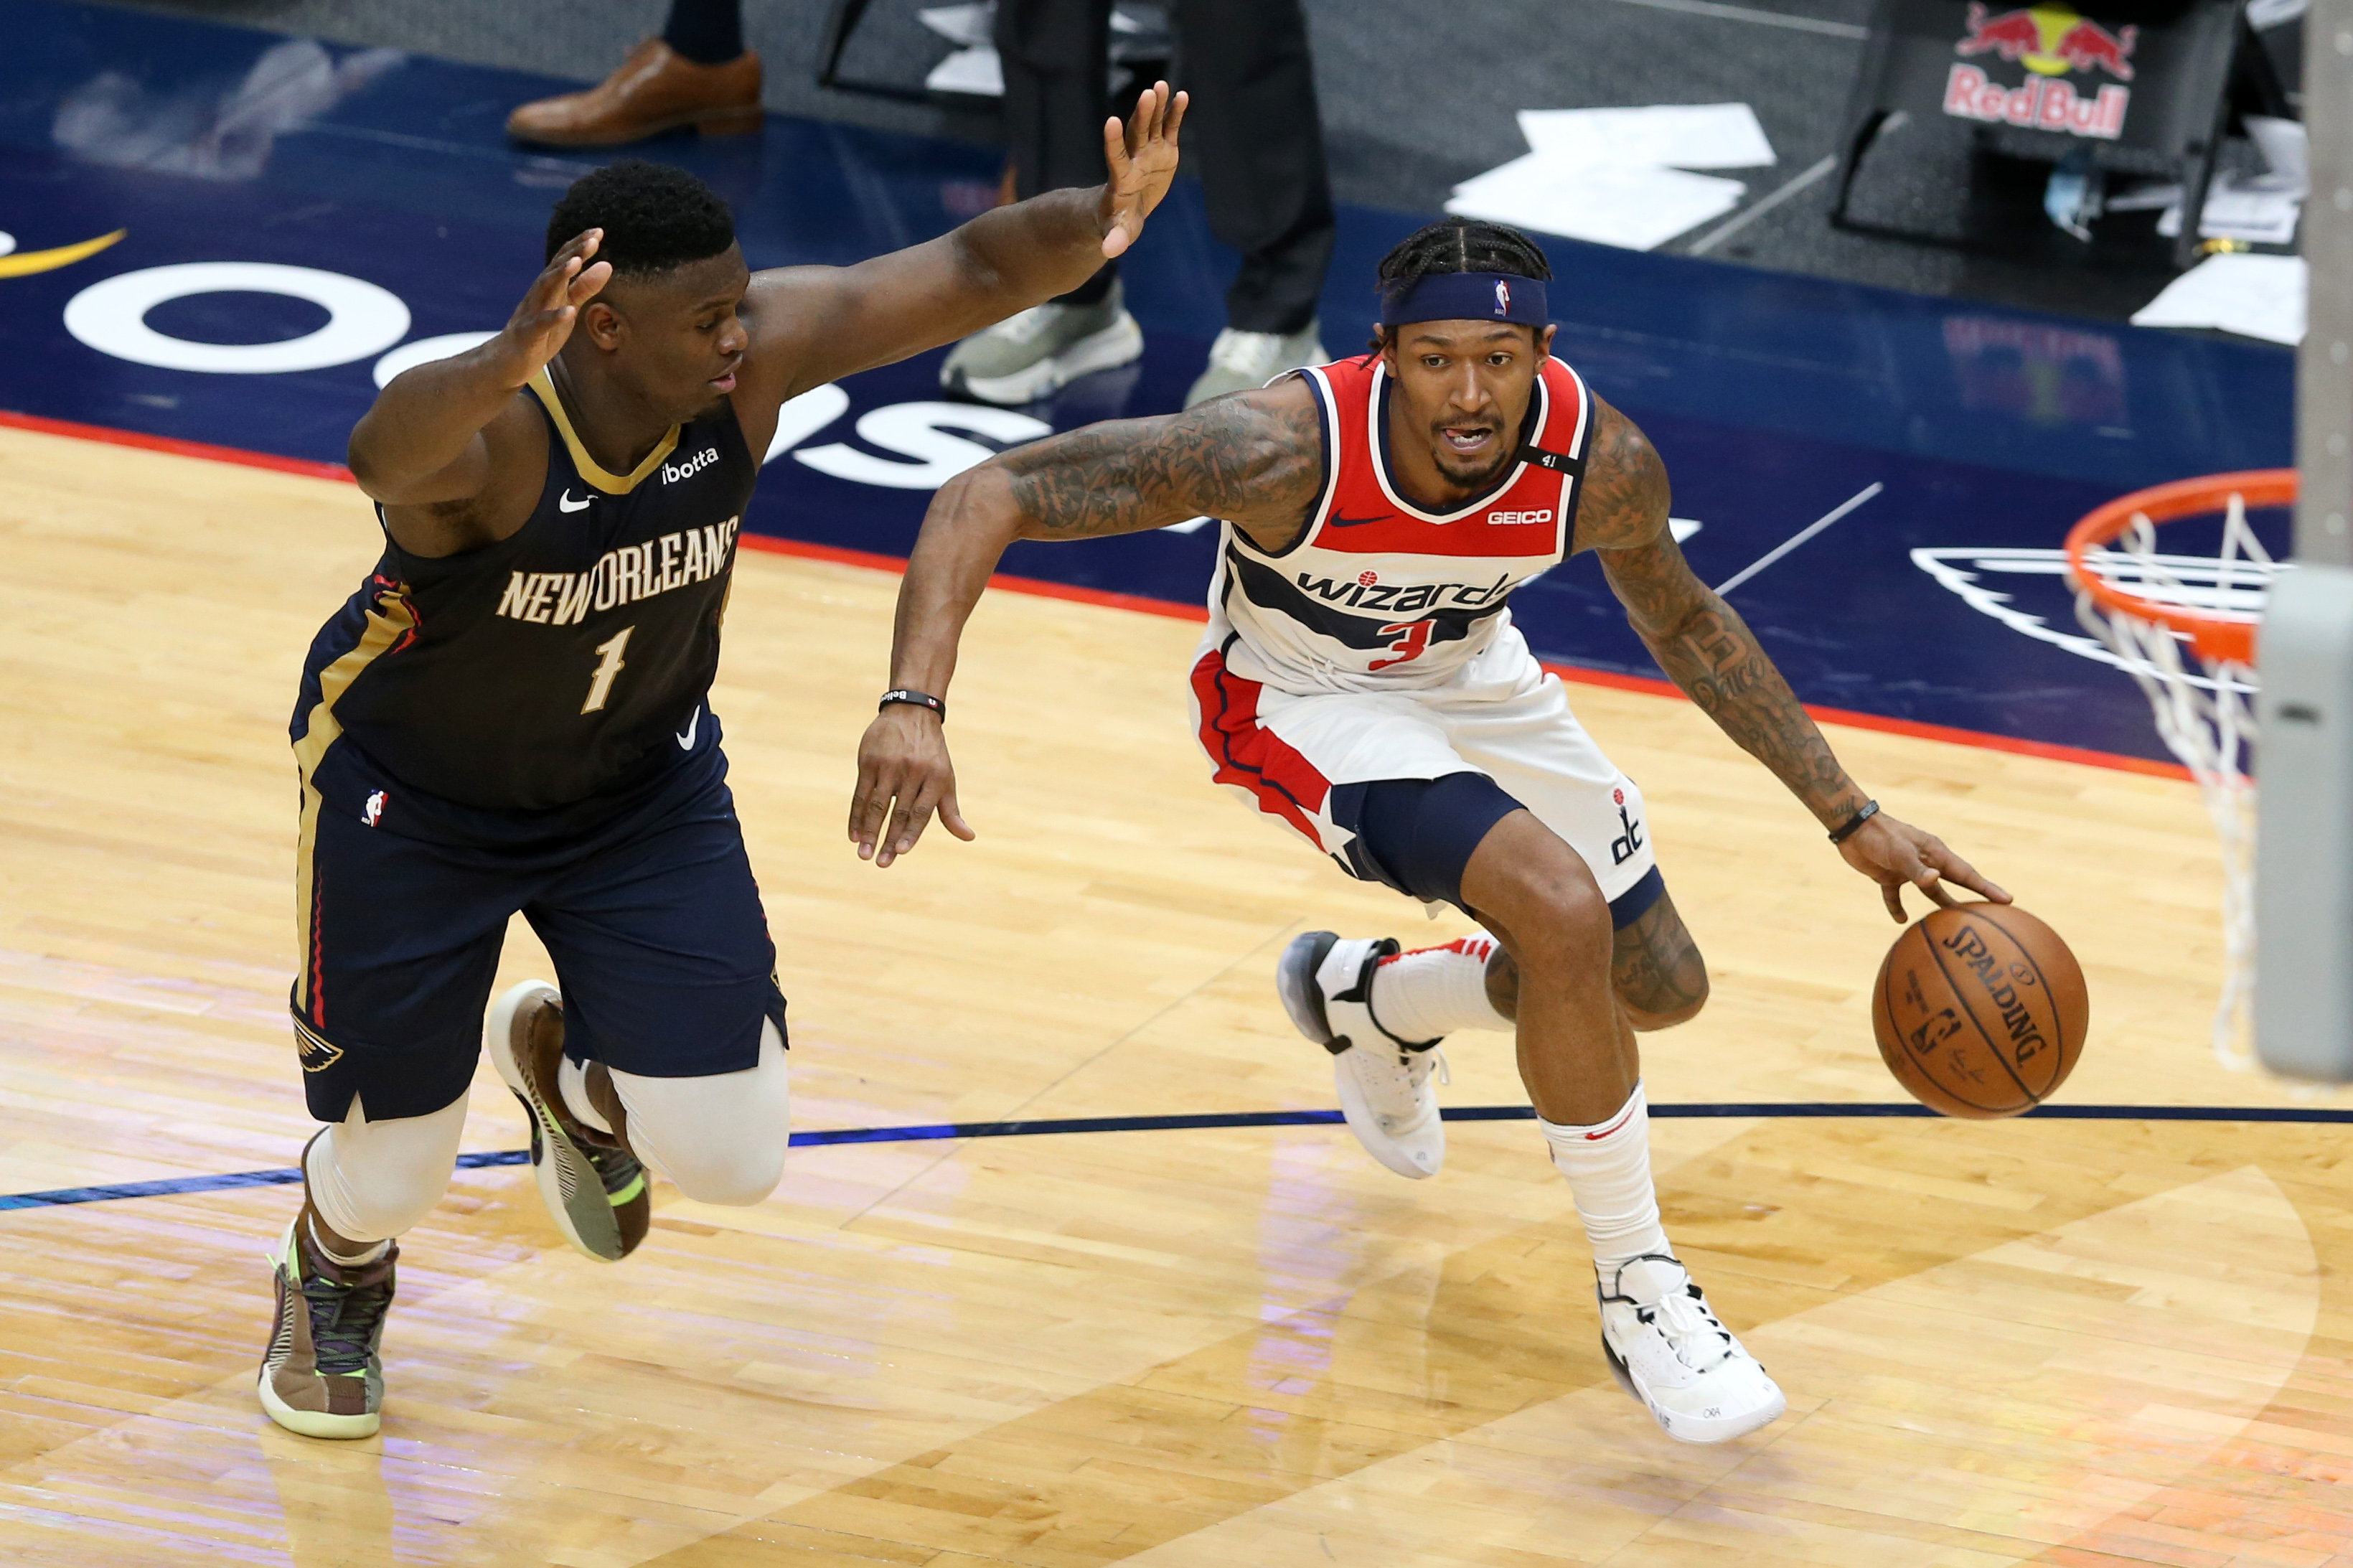 NBA: Washington Wizards at New Orleans Pelicans